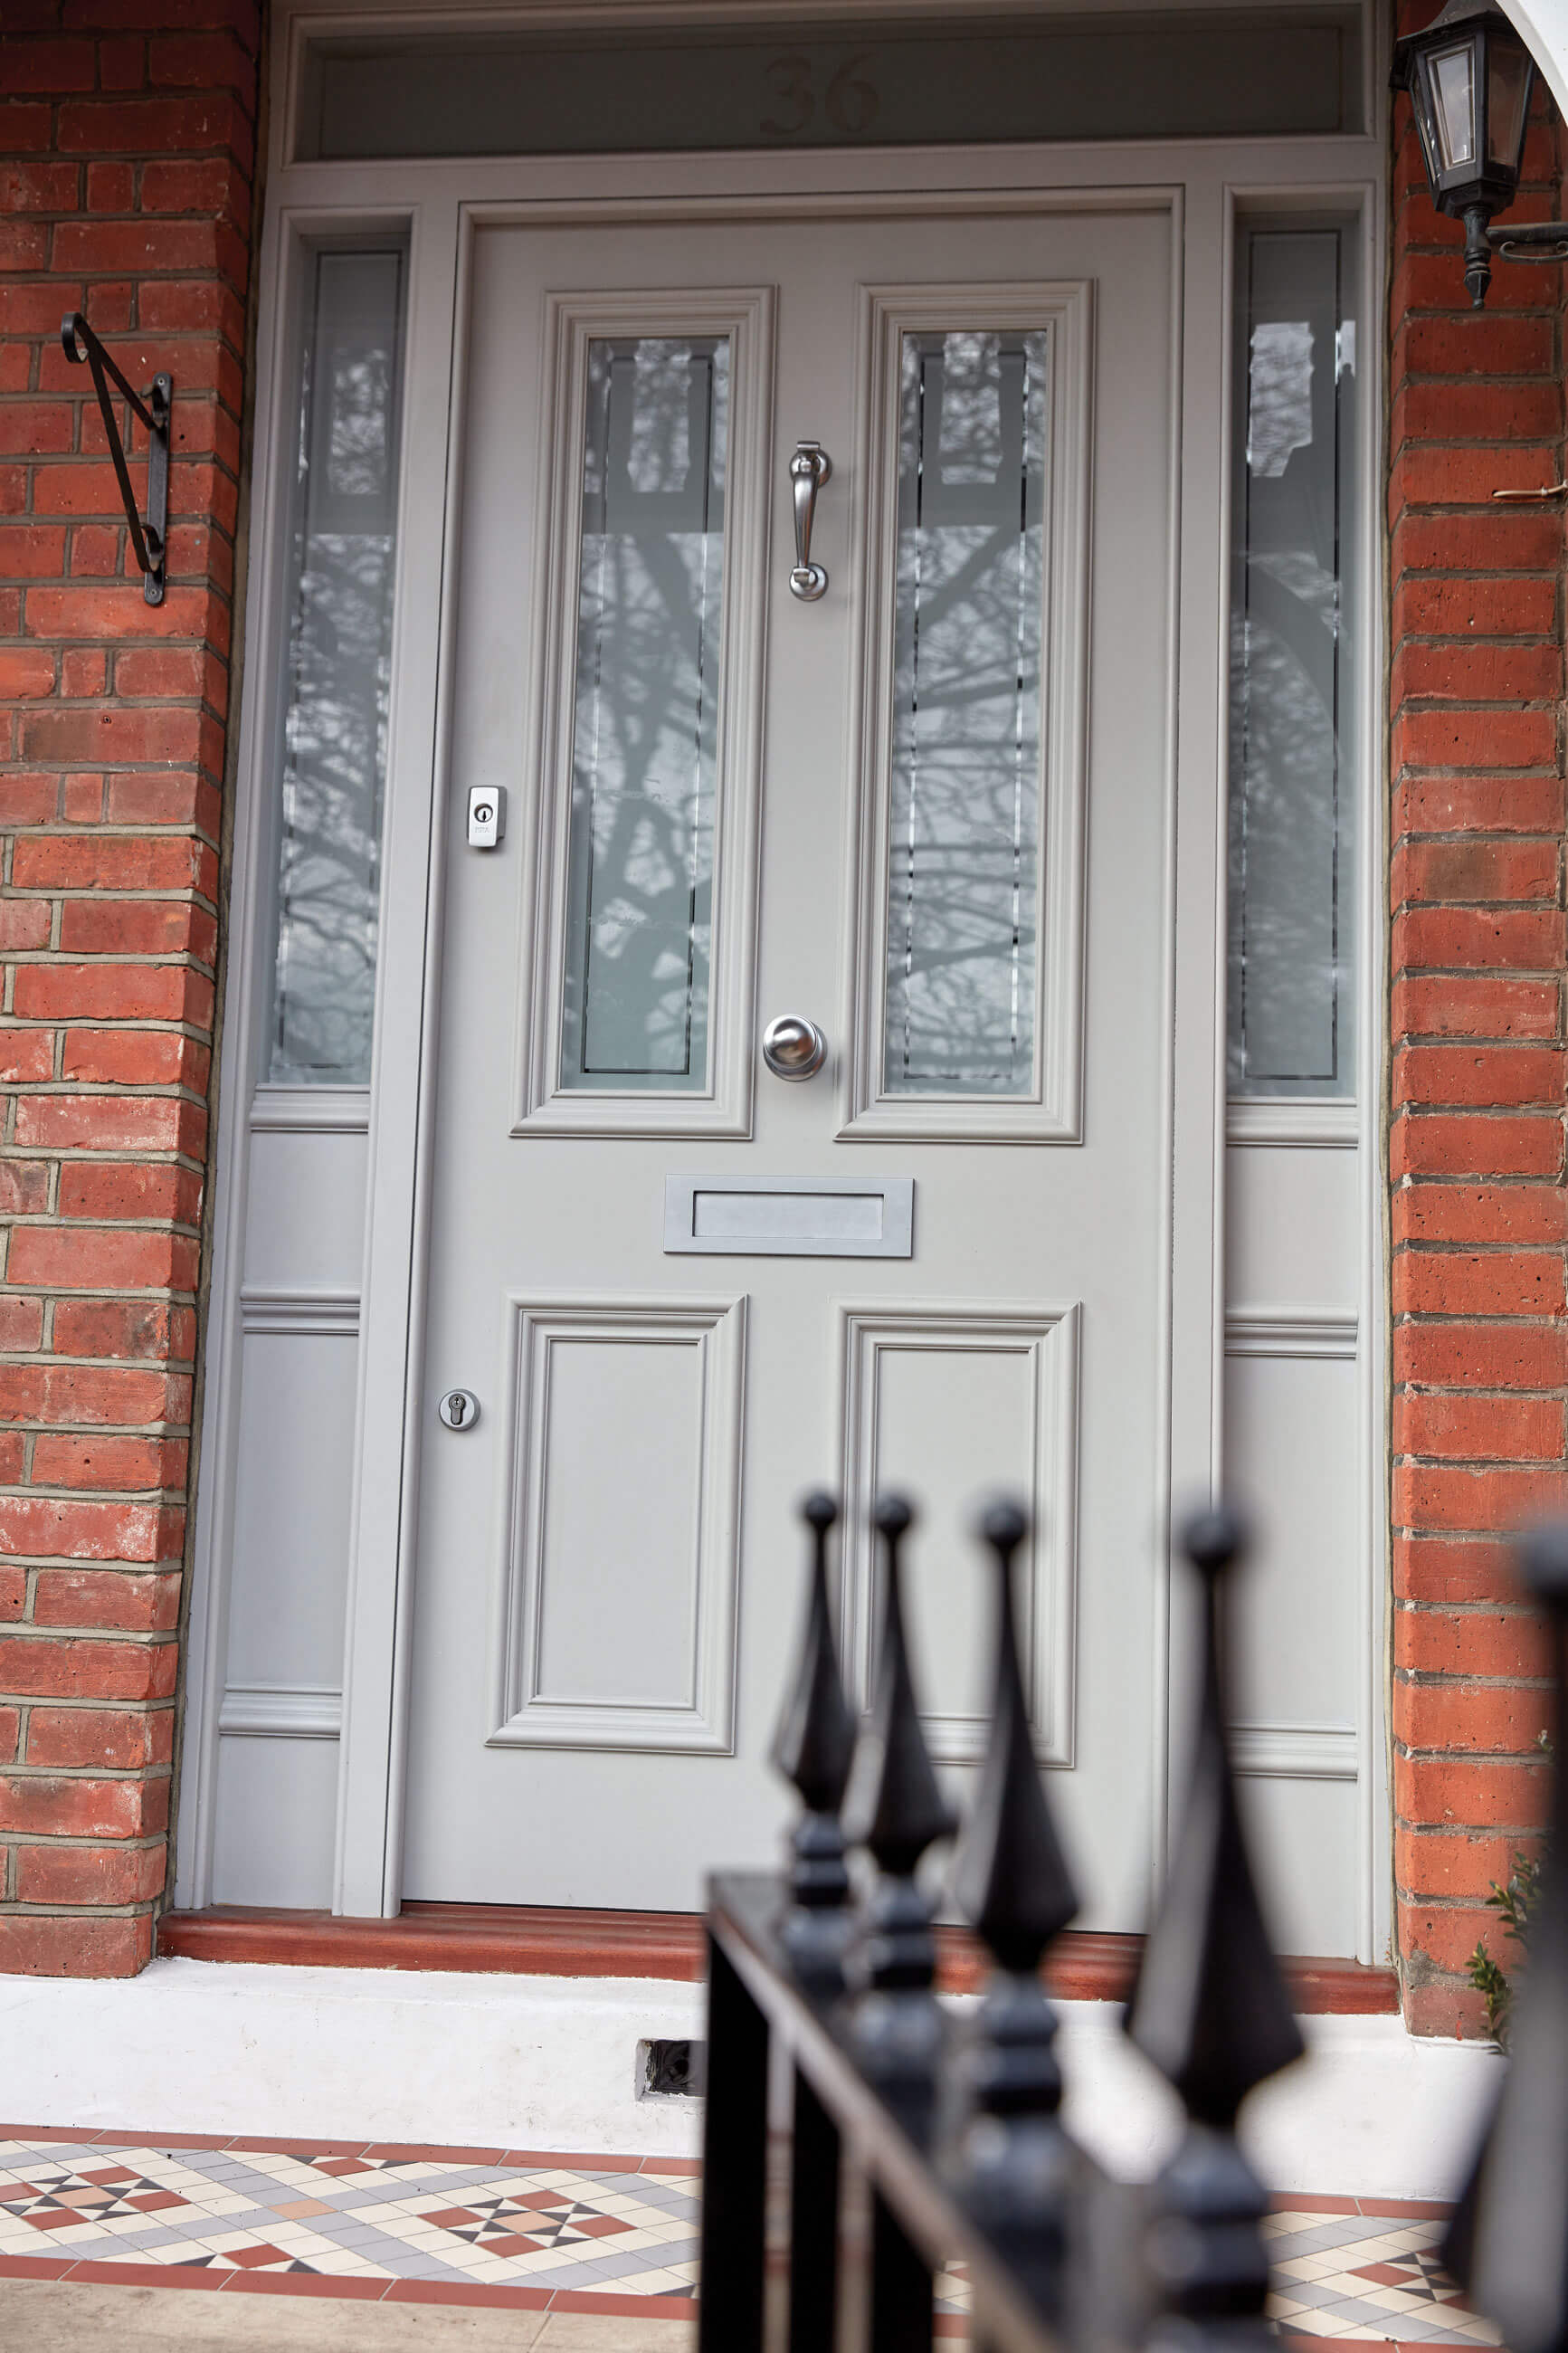 Choosing A Georgian, Victorian, Edwardian Or Art Deco Front Door Can Be  Fun, But Rather Than Trawl Around Reclamation Yards Looking For Originals  That May ...